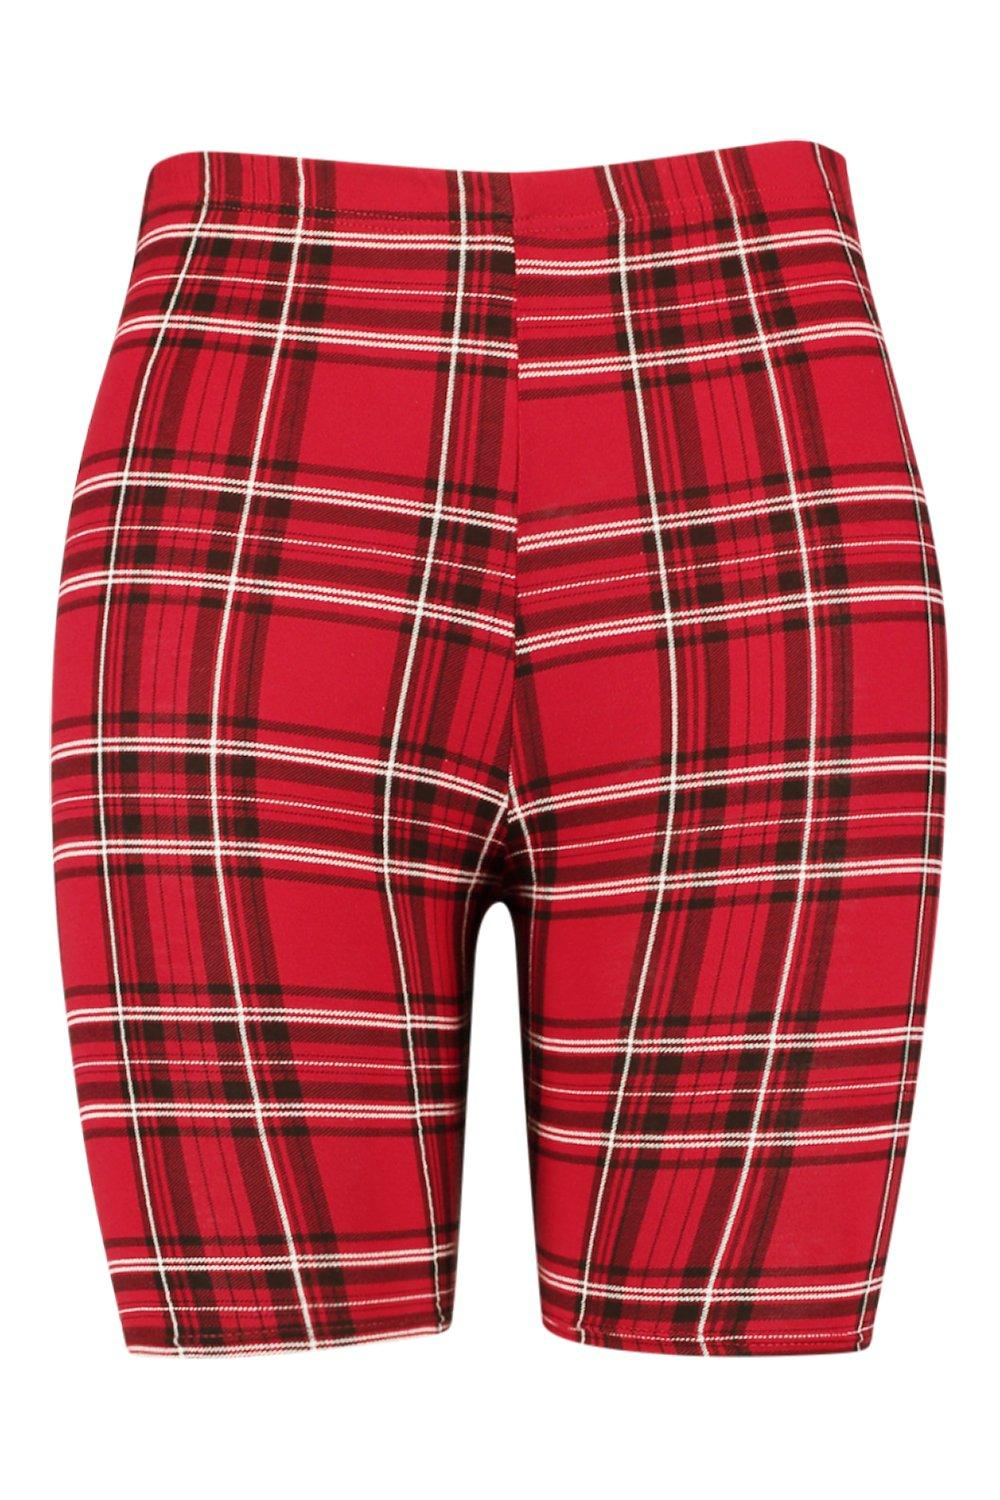 Plus Cycling Tartan red Short Plus Tartan d7qxgtd